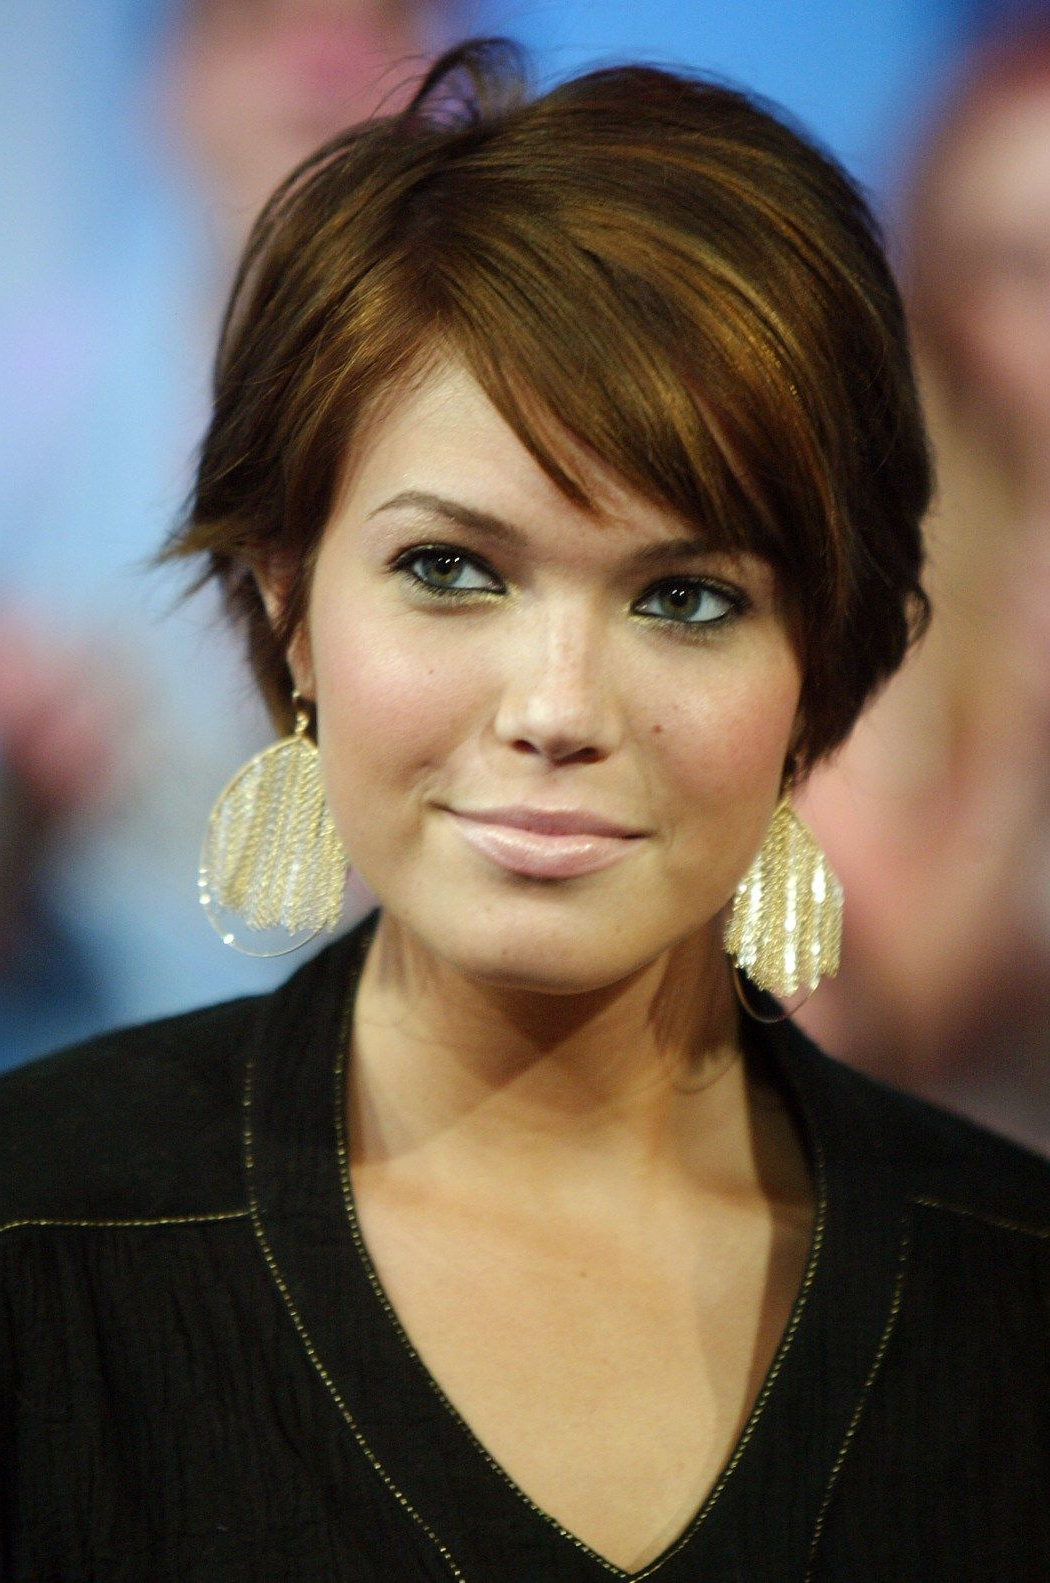 15 Sassy Hairstyles Featuring Mandy Moore Short Hair | Pinterest Inside Short Hairstyles For Small Faces (View 4 of 25)